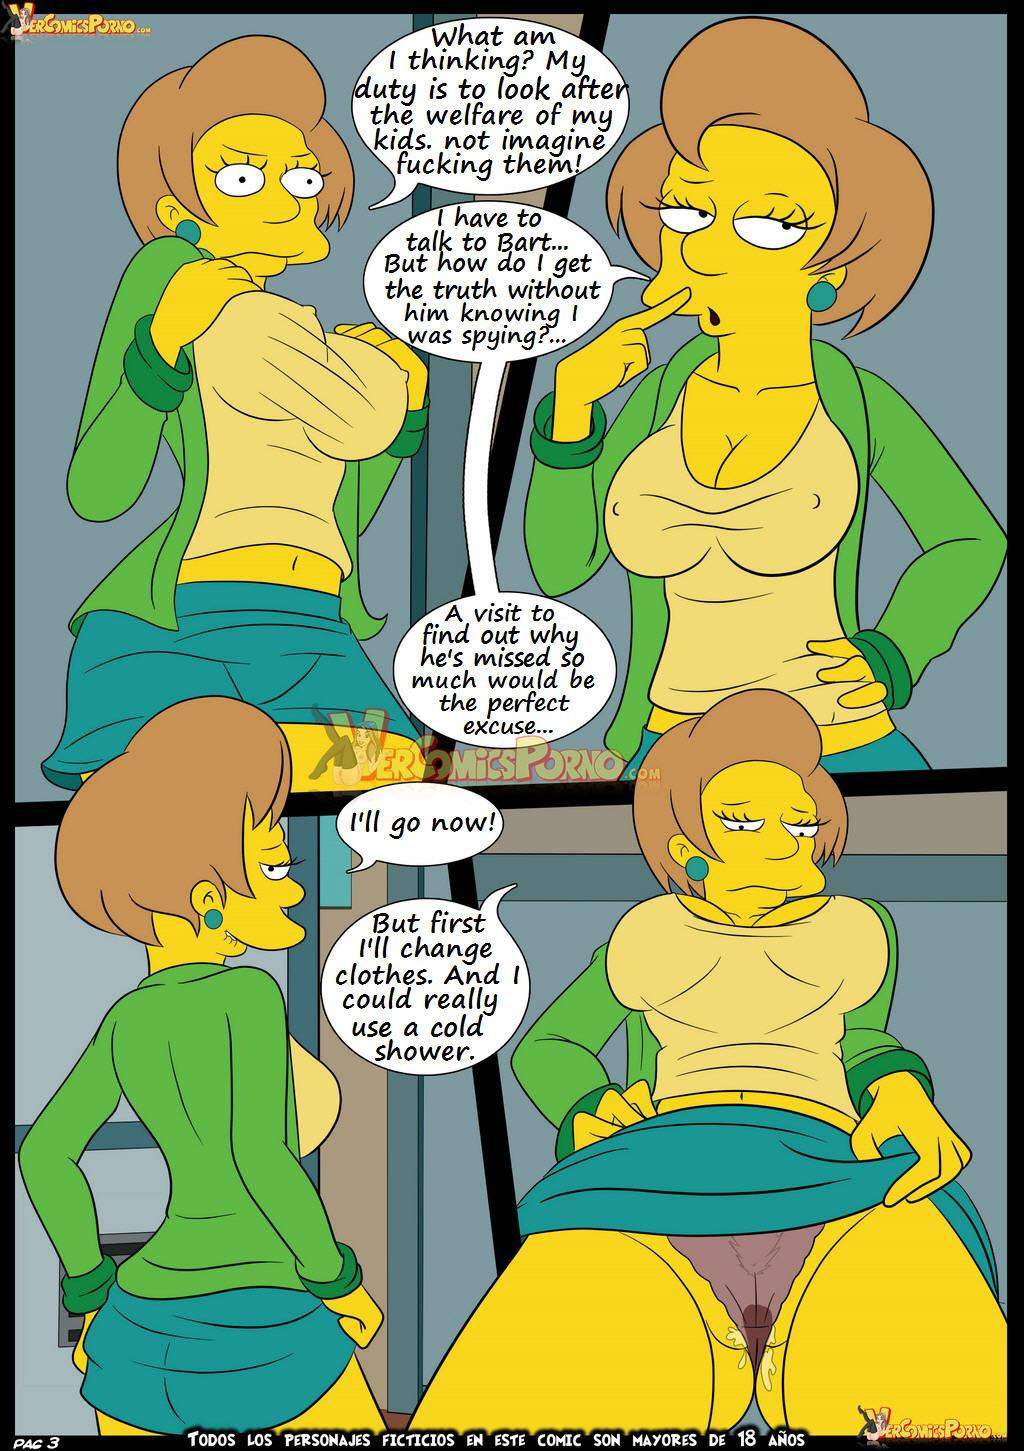 4 43 - The Simpsons. Part 5.